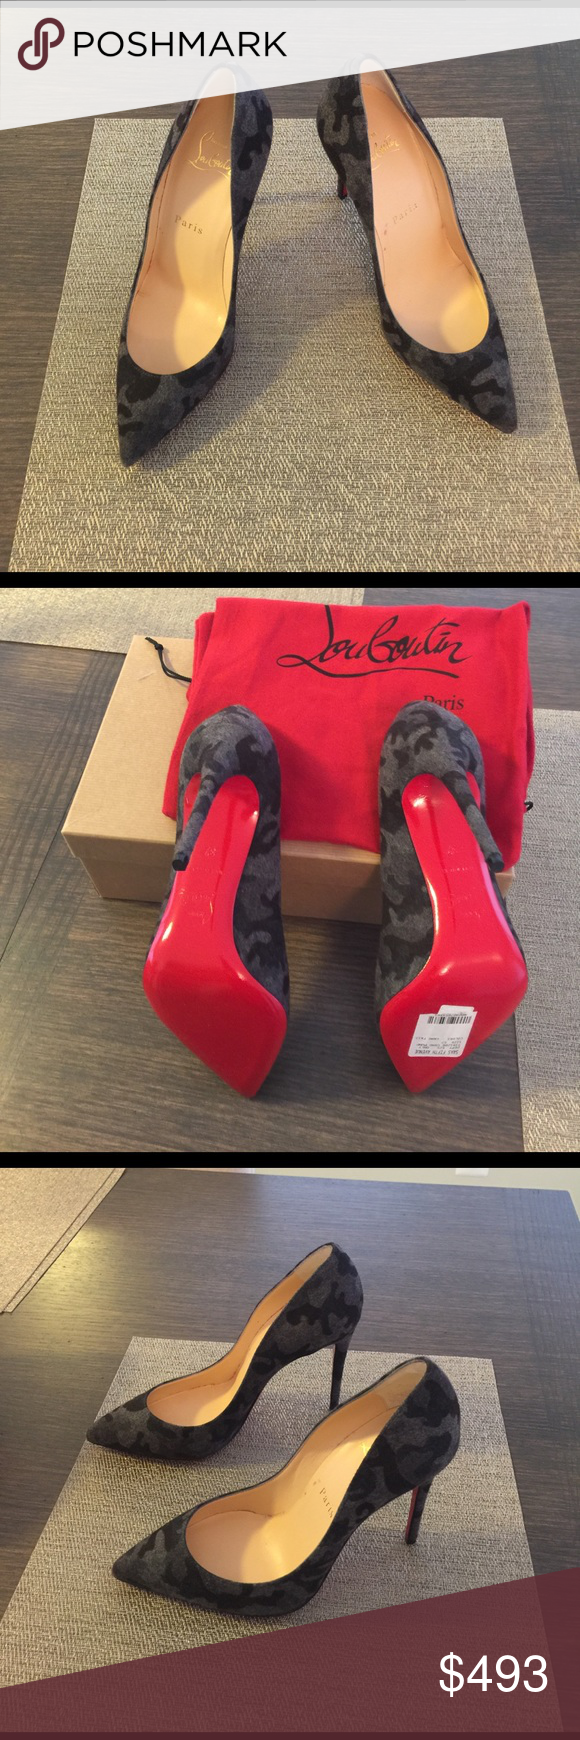 Christian Louboutin heels Never been worn. Original box and dust bags. Christian Louboutin Shoes Heels